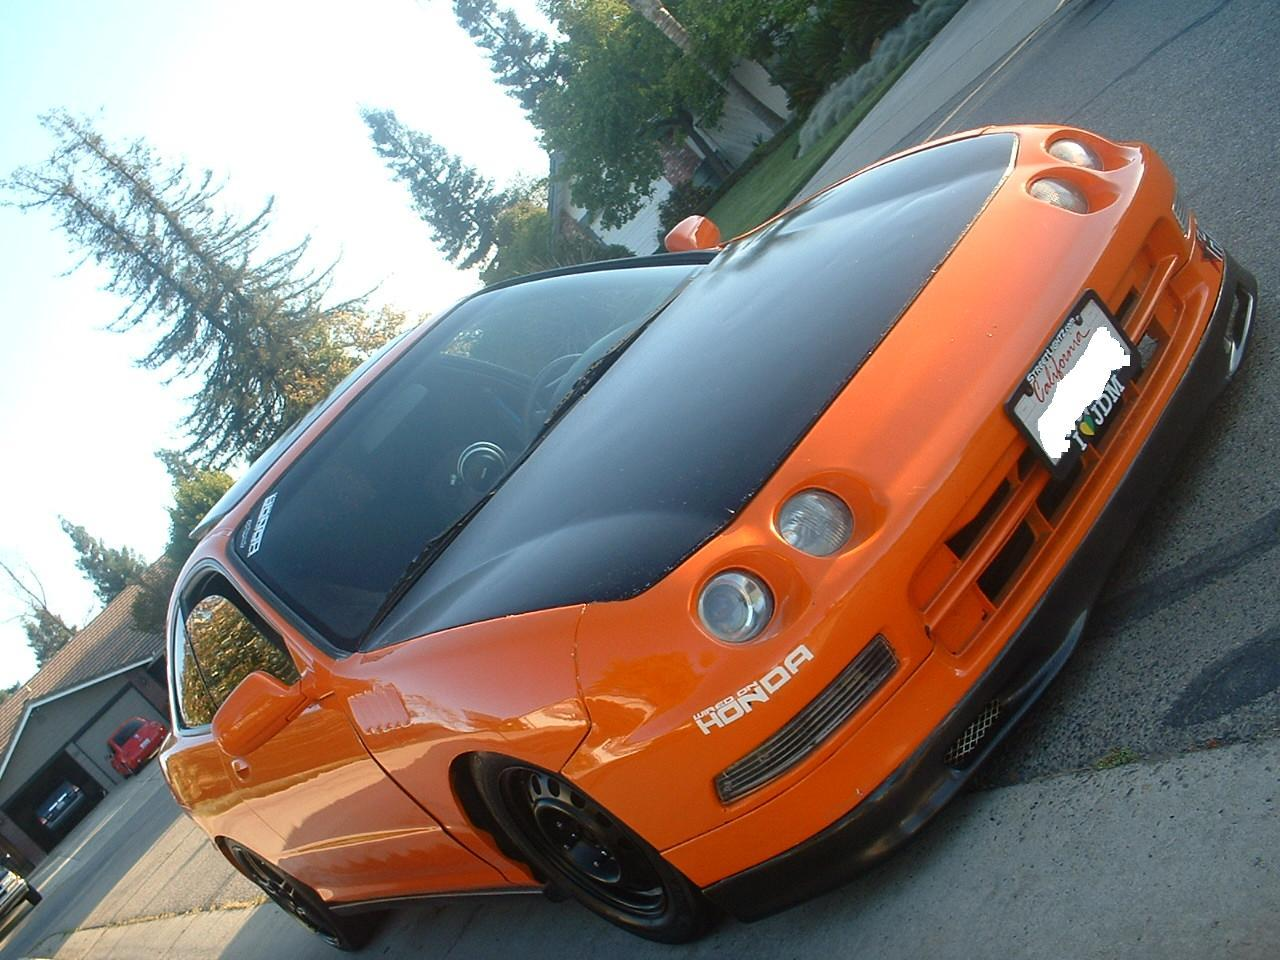 Nissan Of Visalia >> santi12 1996 Acura Integra Specs, Photos, Modification ...